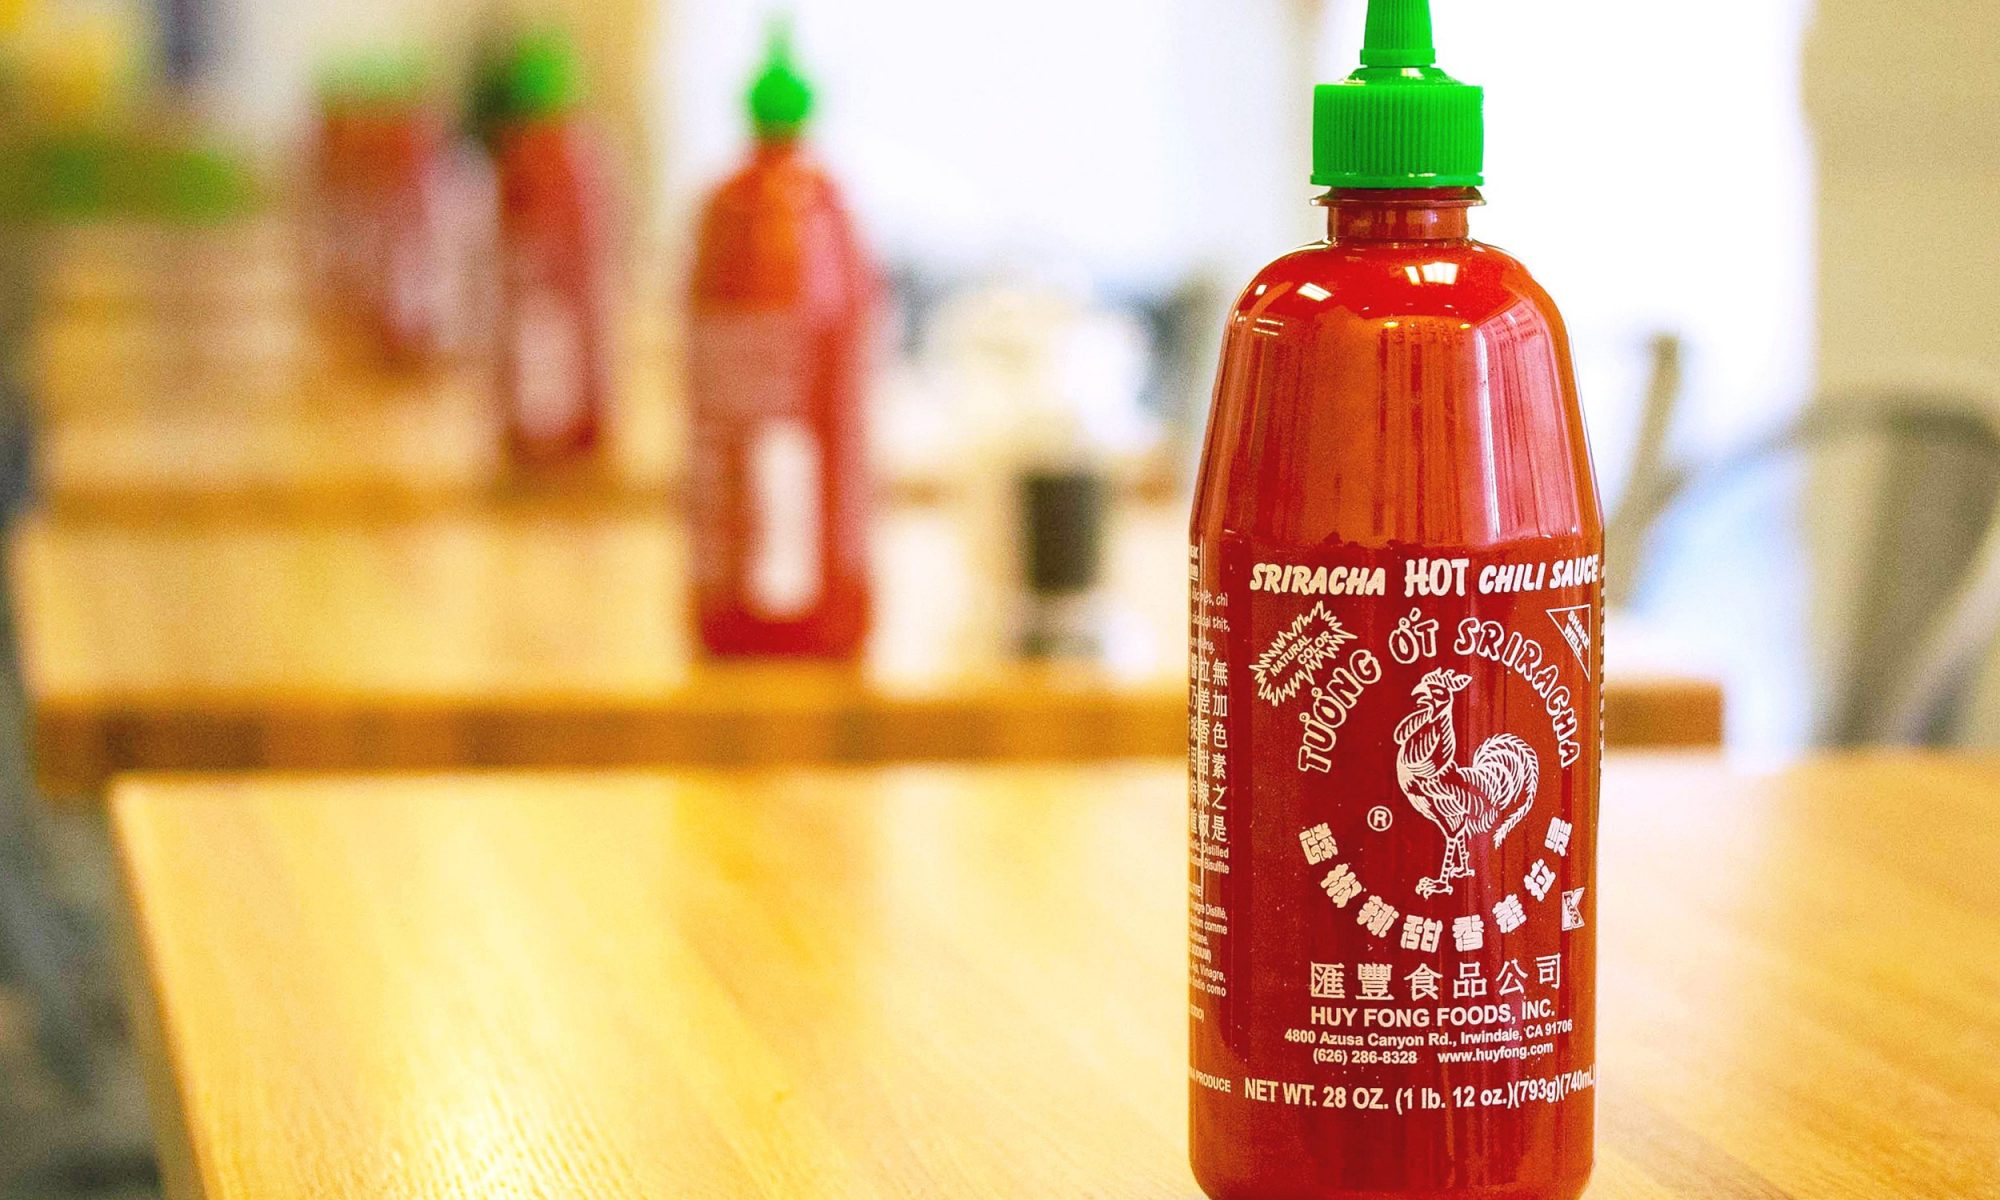 Does Sriracha Need to Be Refrigerated?